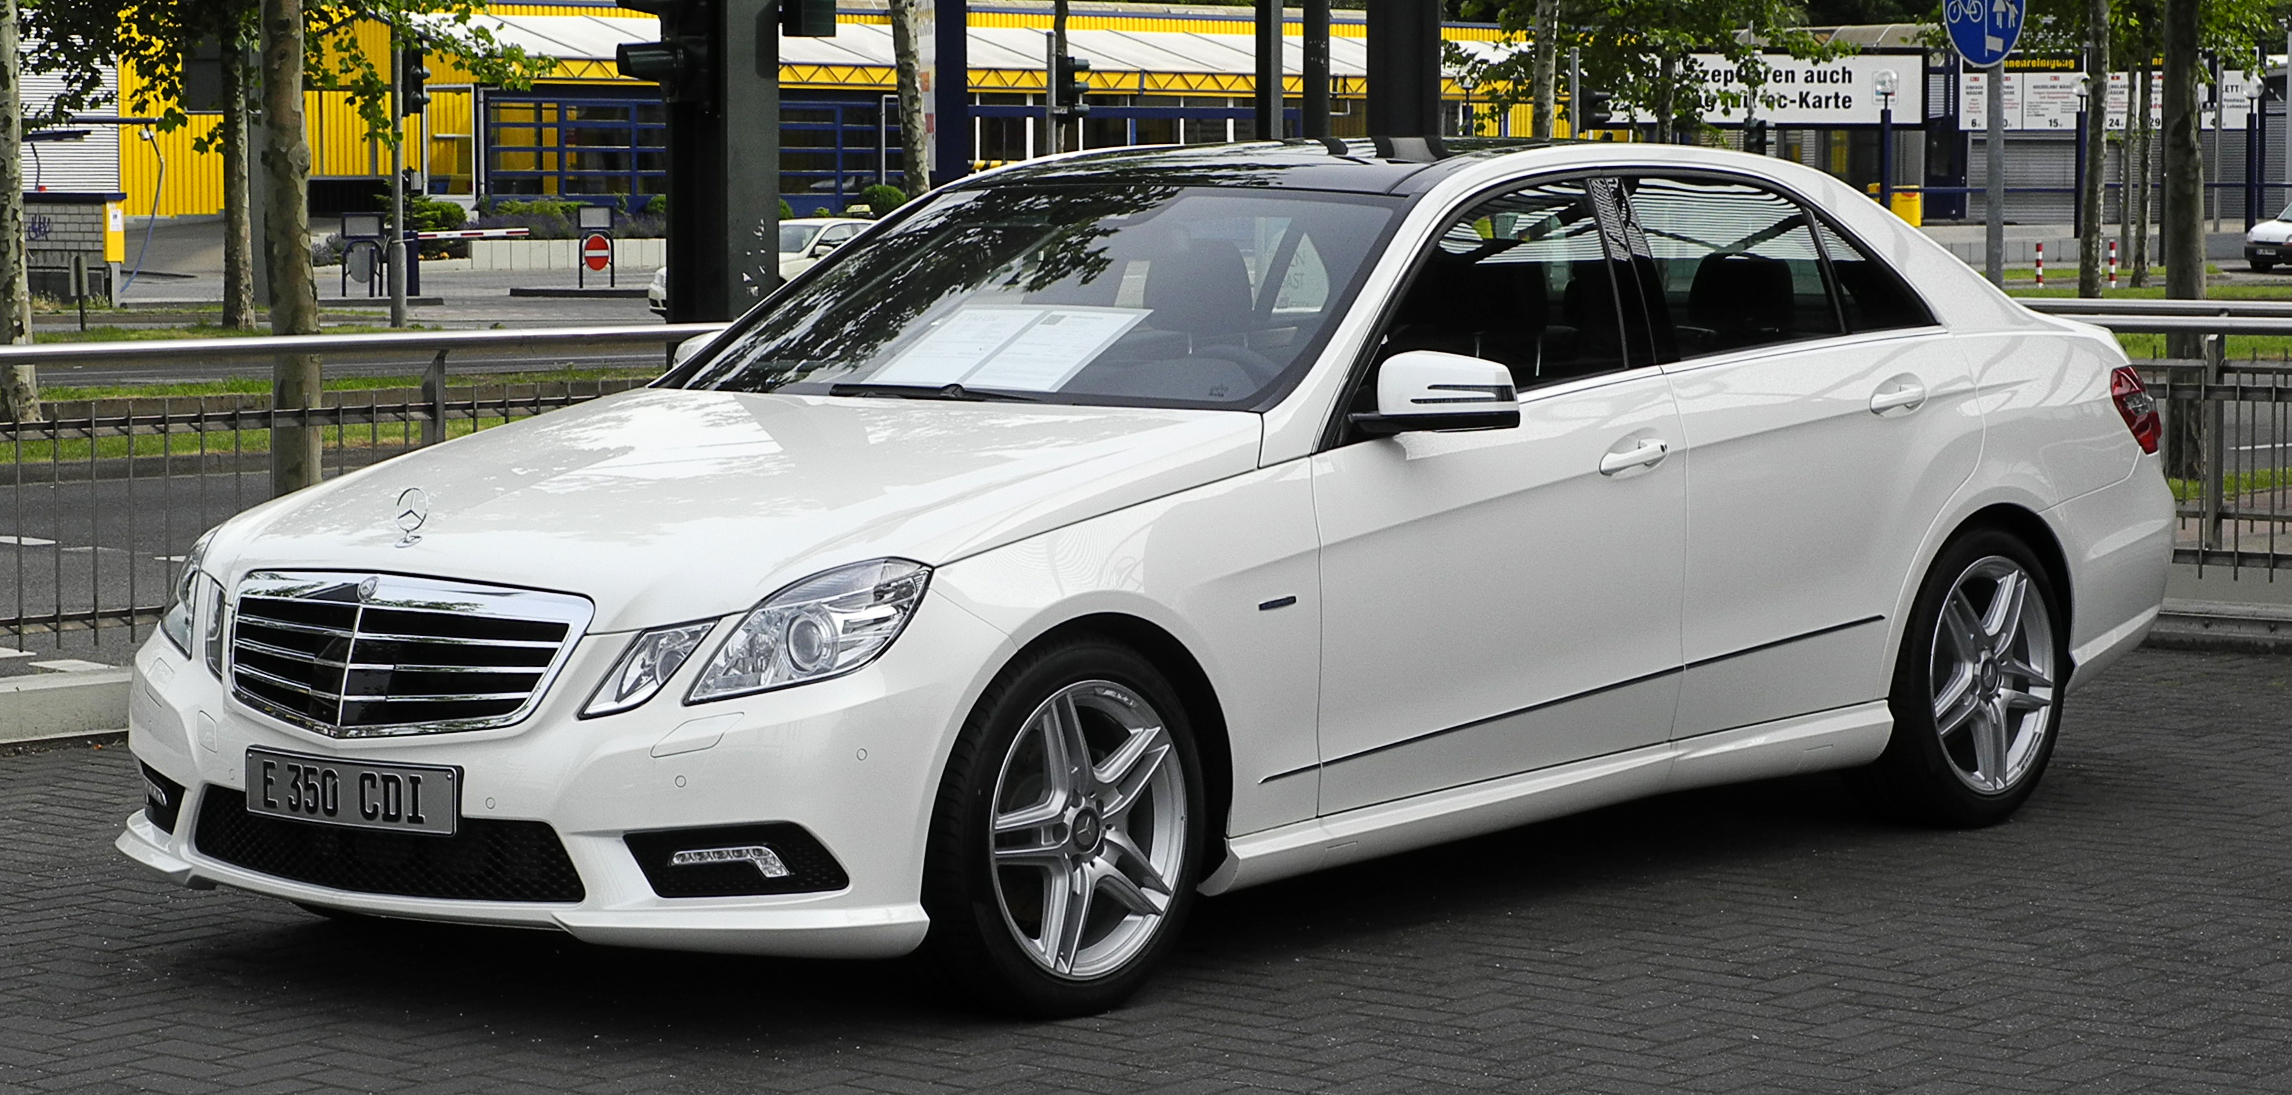 file mercedes benz e 350 cdi blueefficiency 4matic. Black Bedroom Furniture Sets. Home Design Ideas